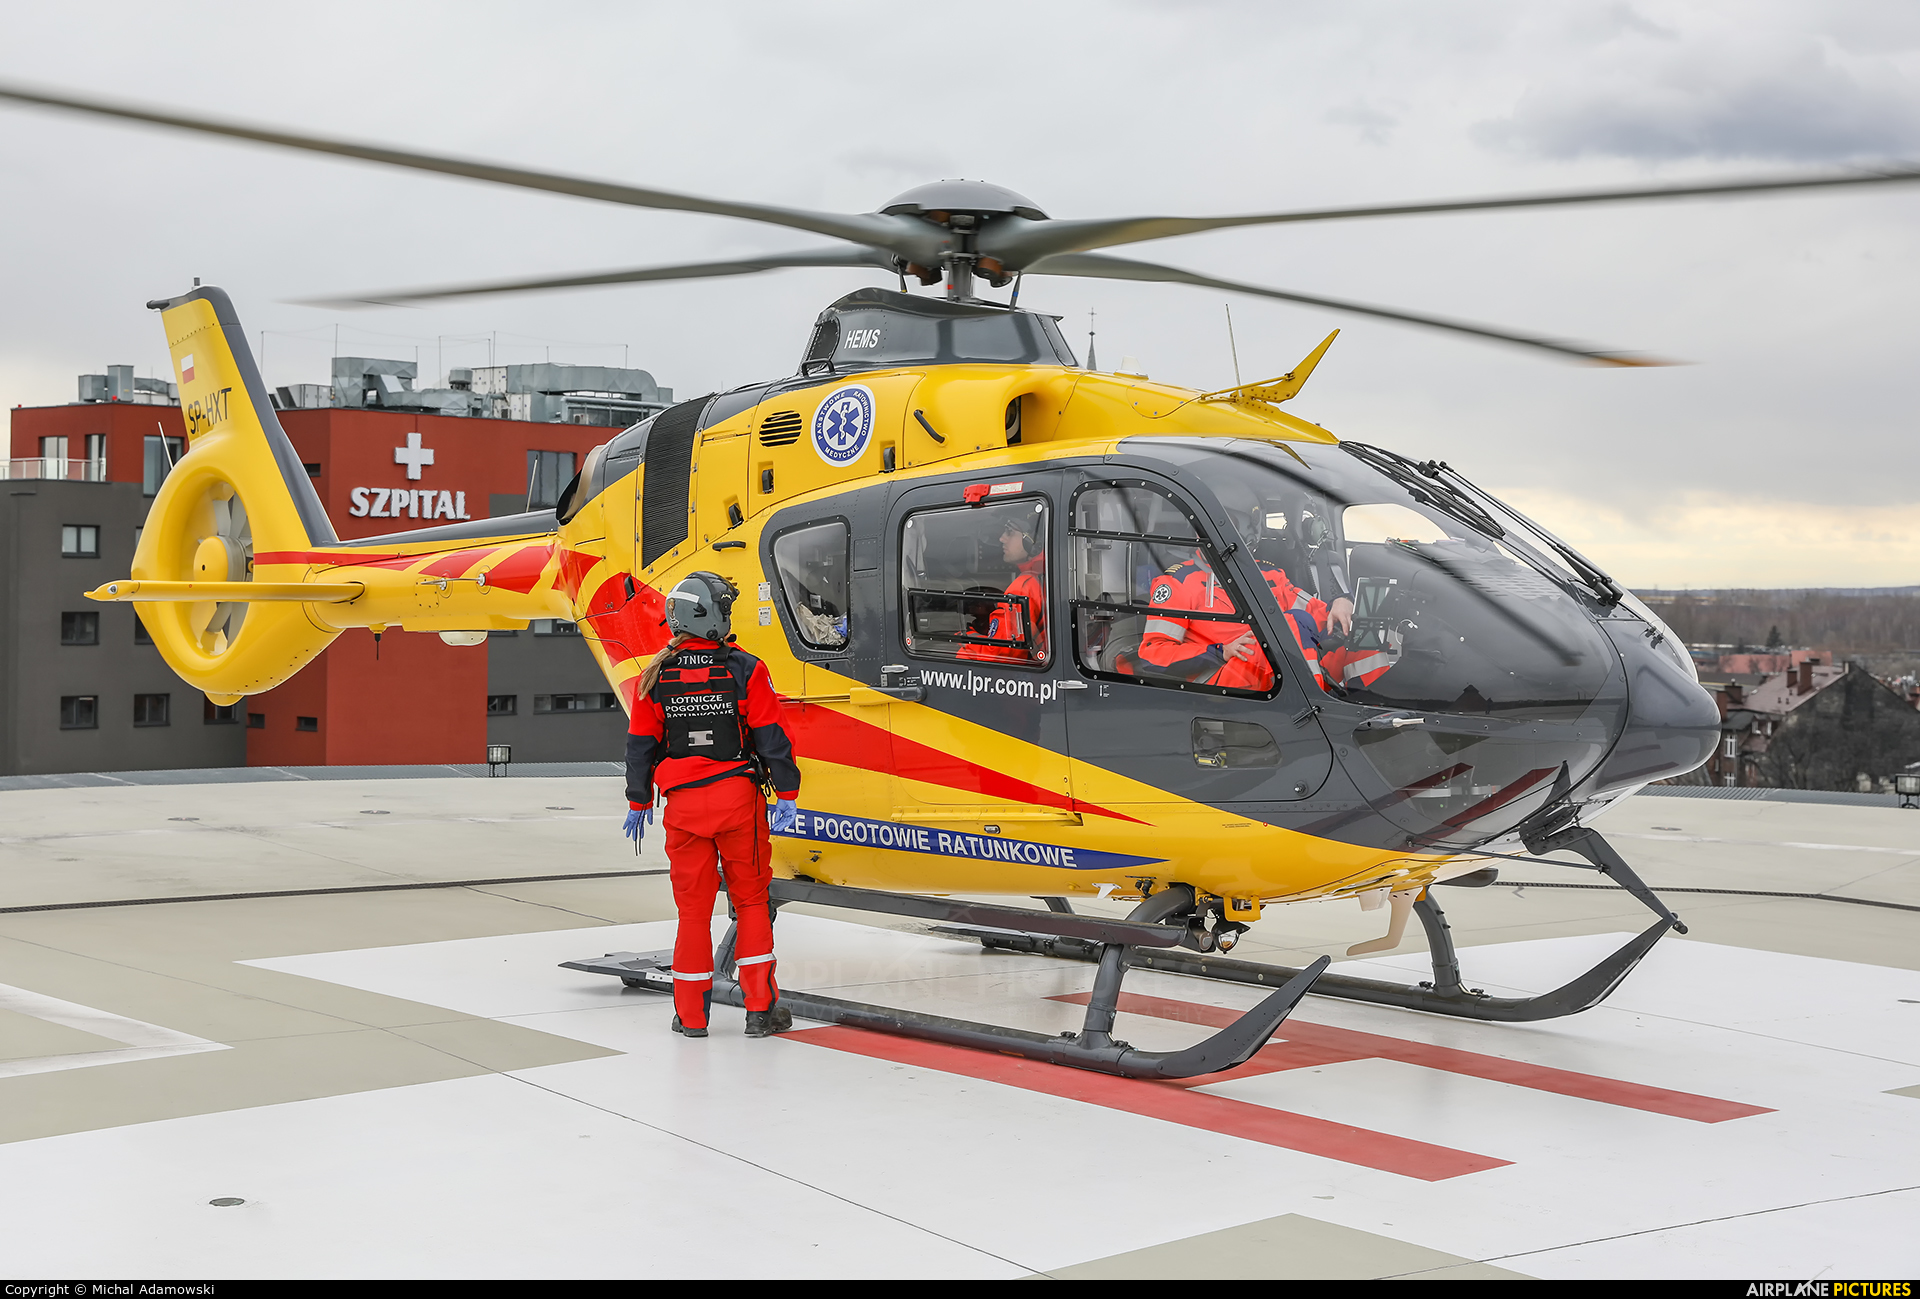 Polish Medical Air Rescue - Lotnicze Pogotowie Ratunkowe SP-HXT aircraft at Undisclosed location